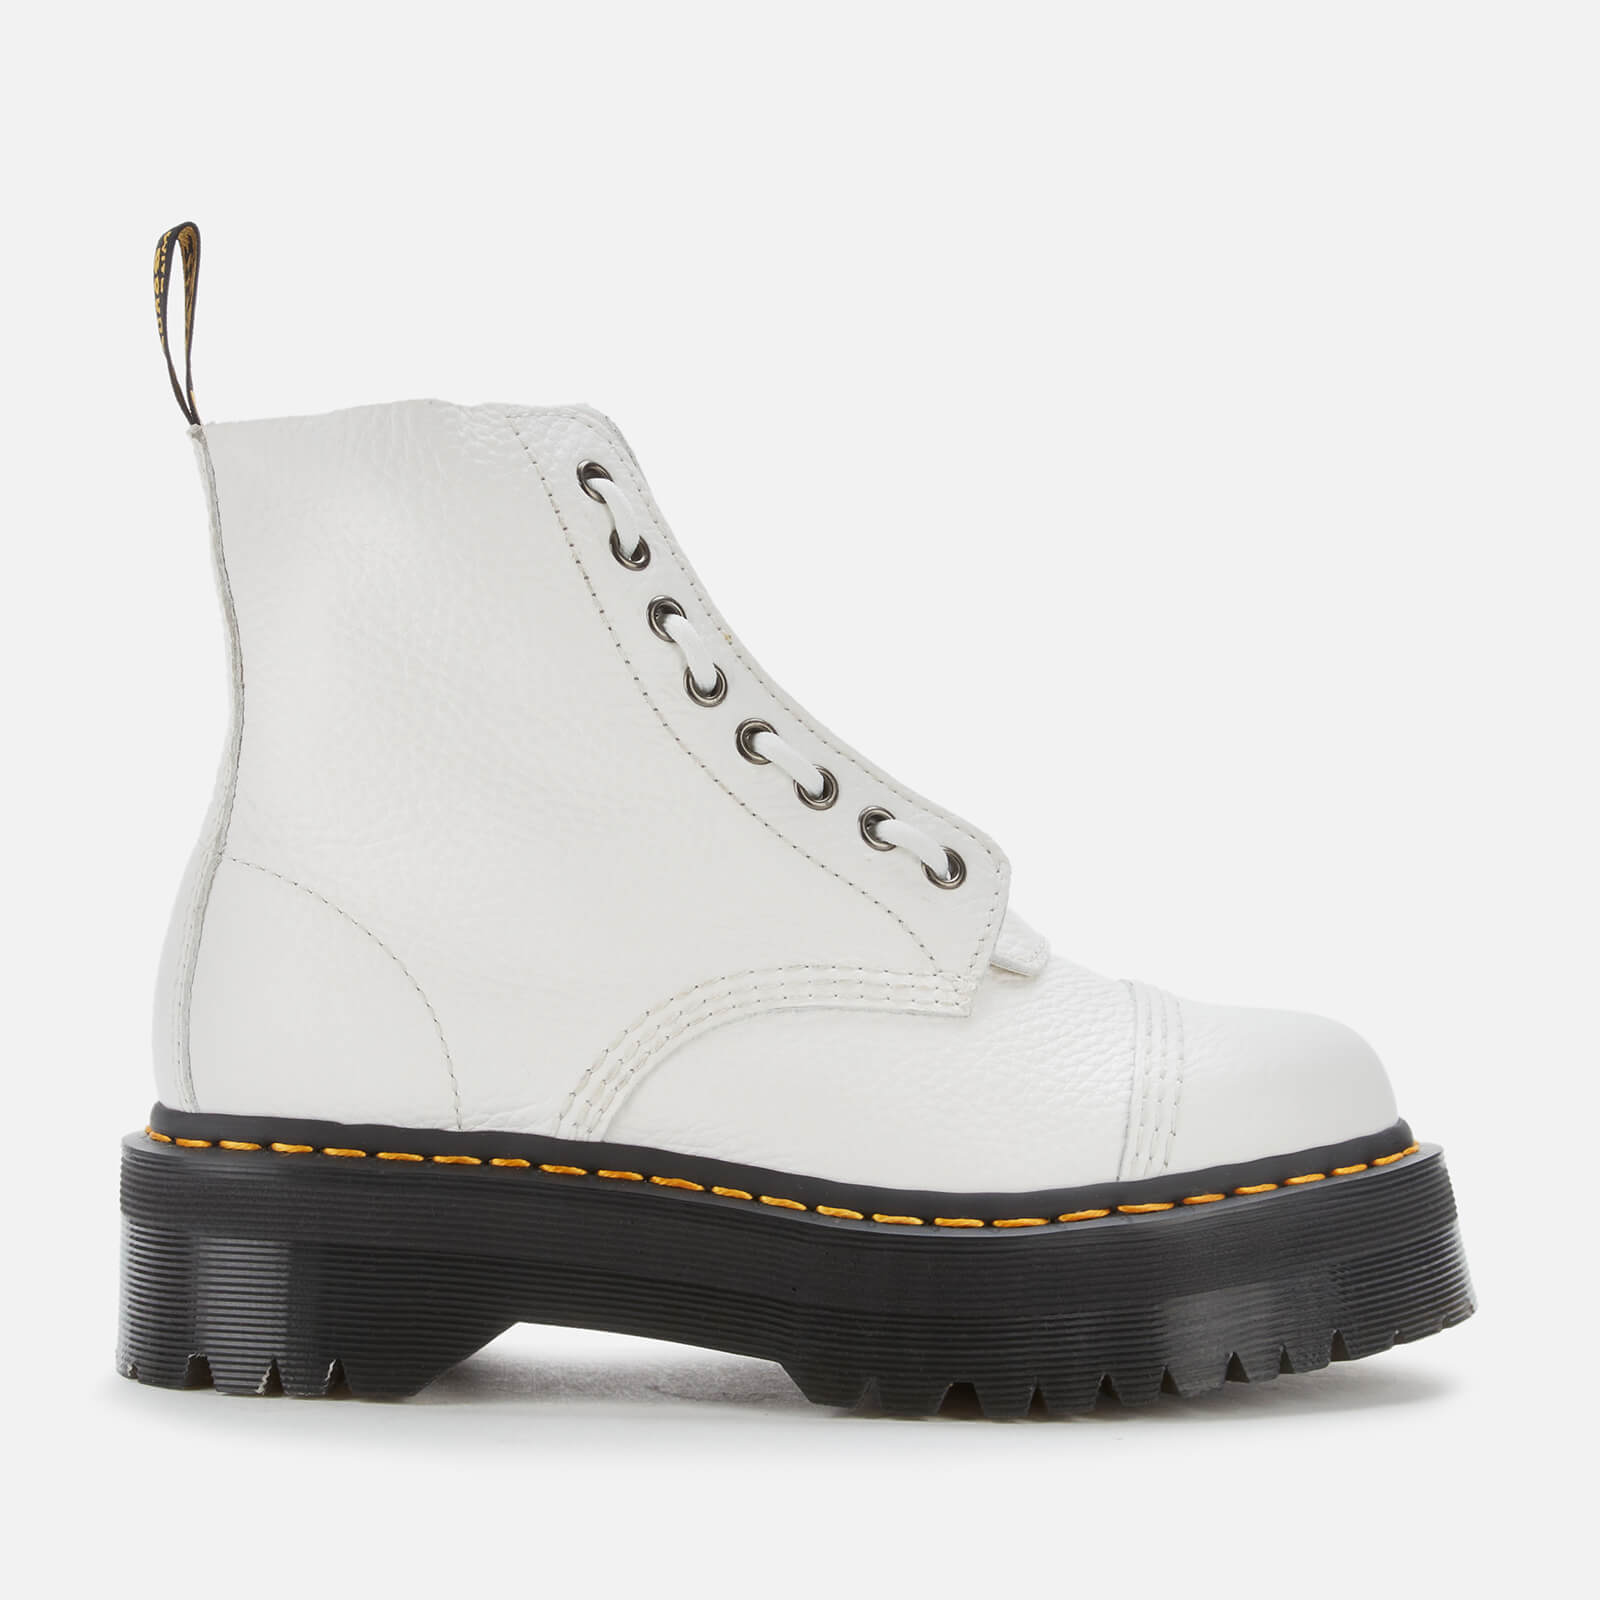 Dr. Martens Women's Sinclair Leather Zip Front Boots - White - UK 8